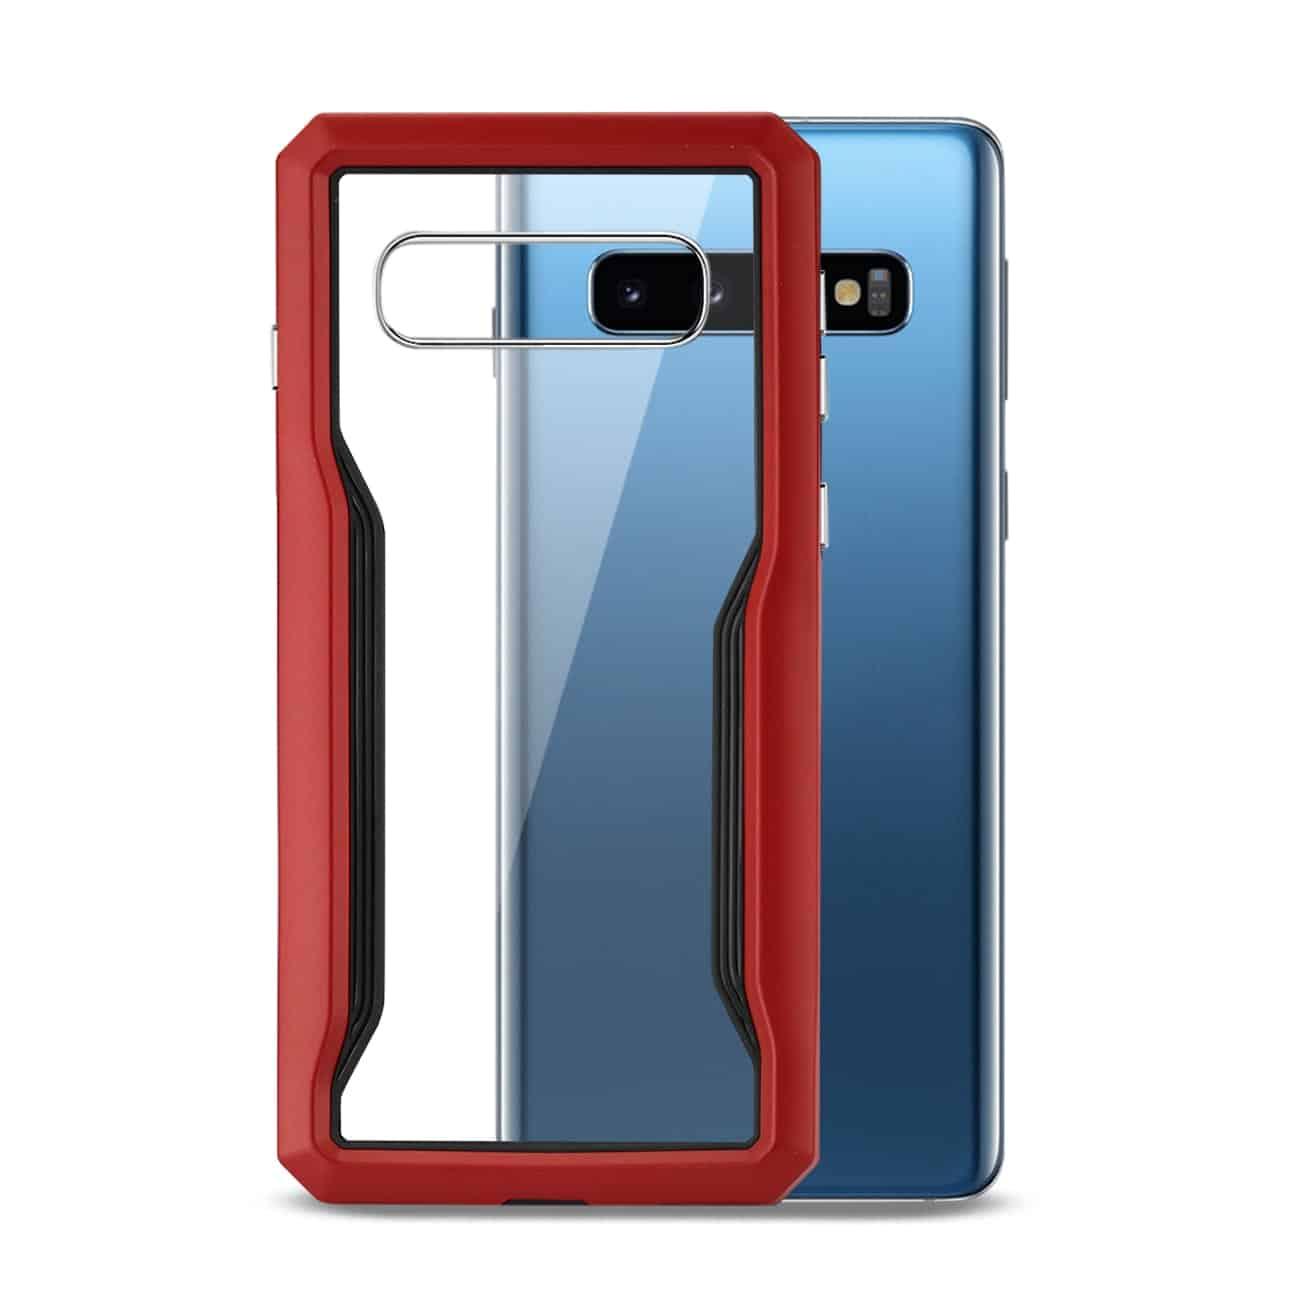 SAMSUNG GALAXY S10 Plus Protective Cover In Red